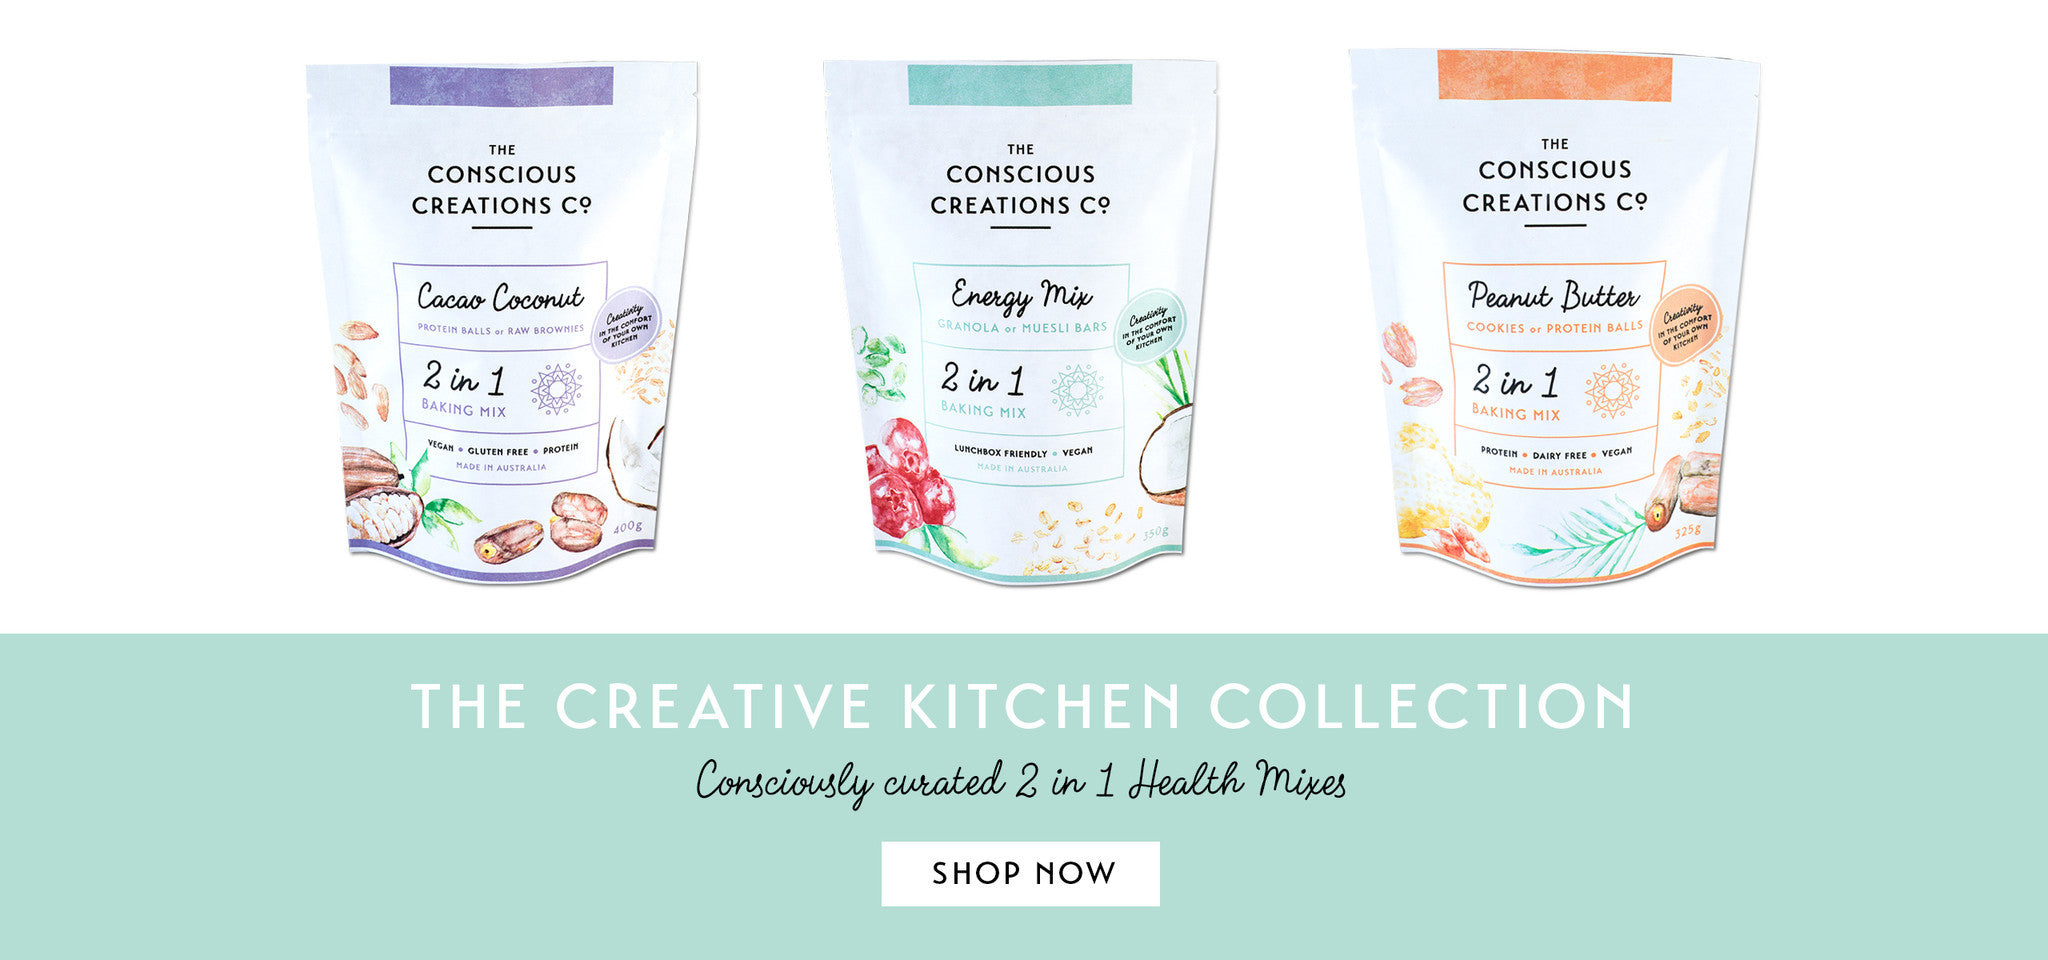 The Conscious Creations Co. Recipes